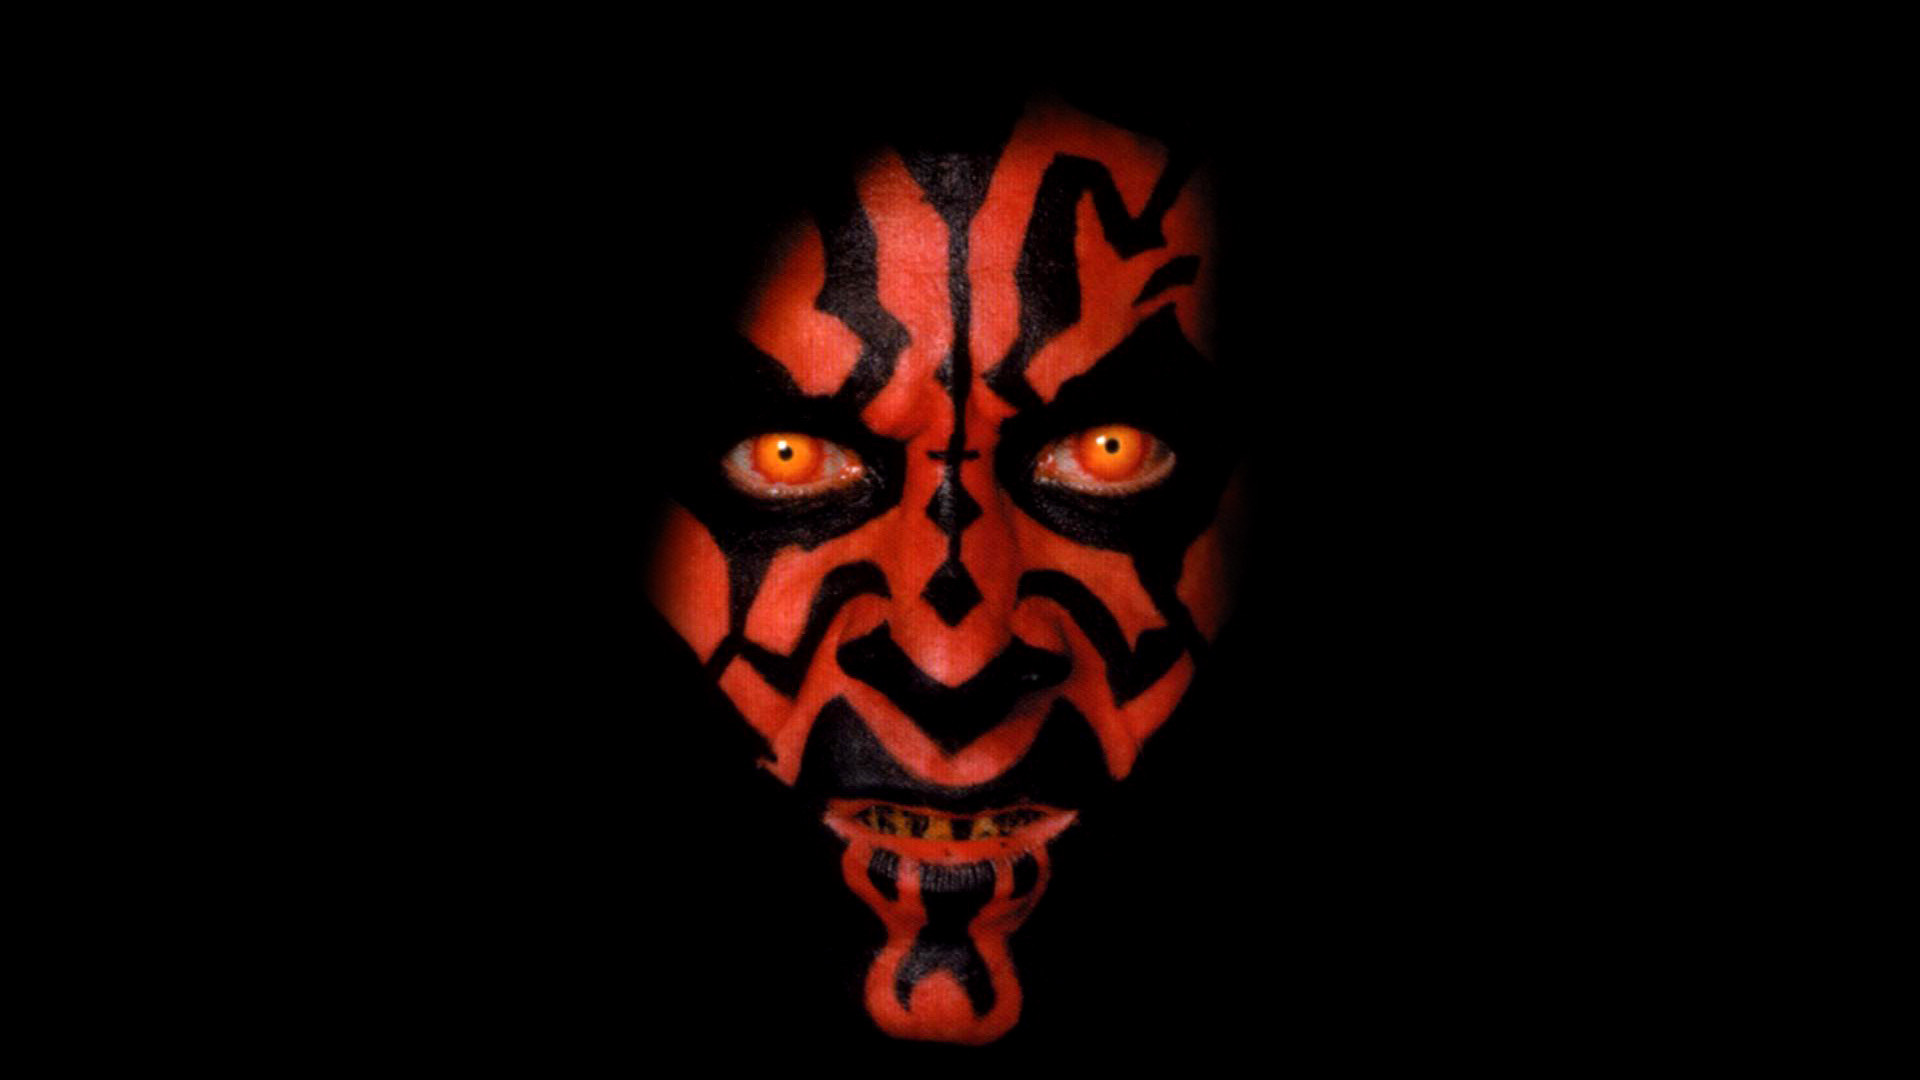 Darth Maul Hd Wallpaper Background Image 1920x1080